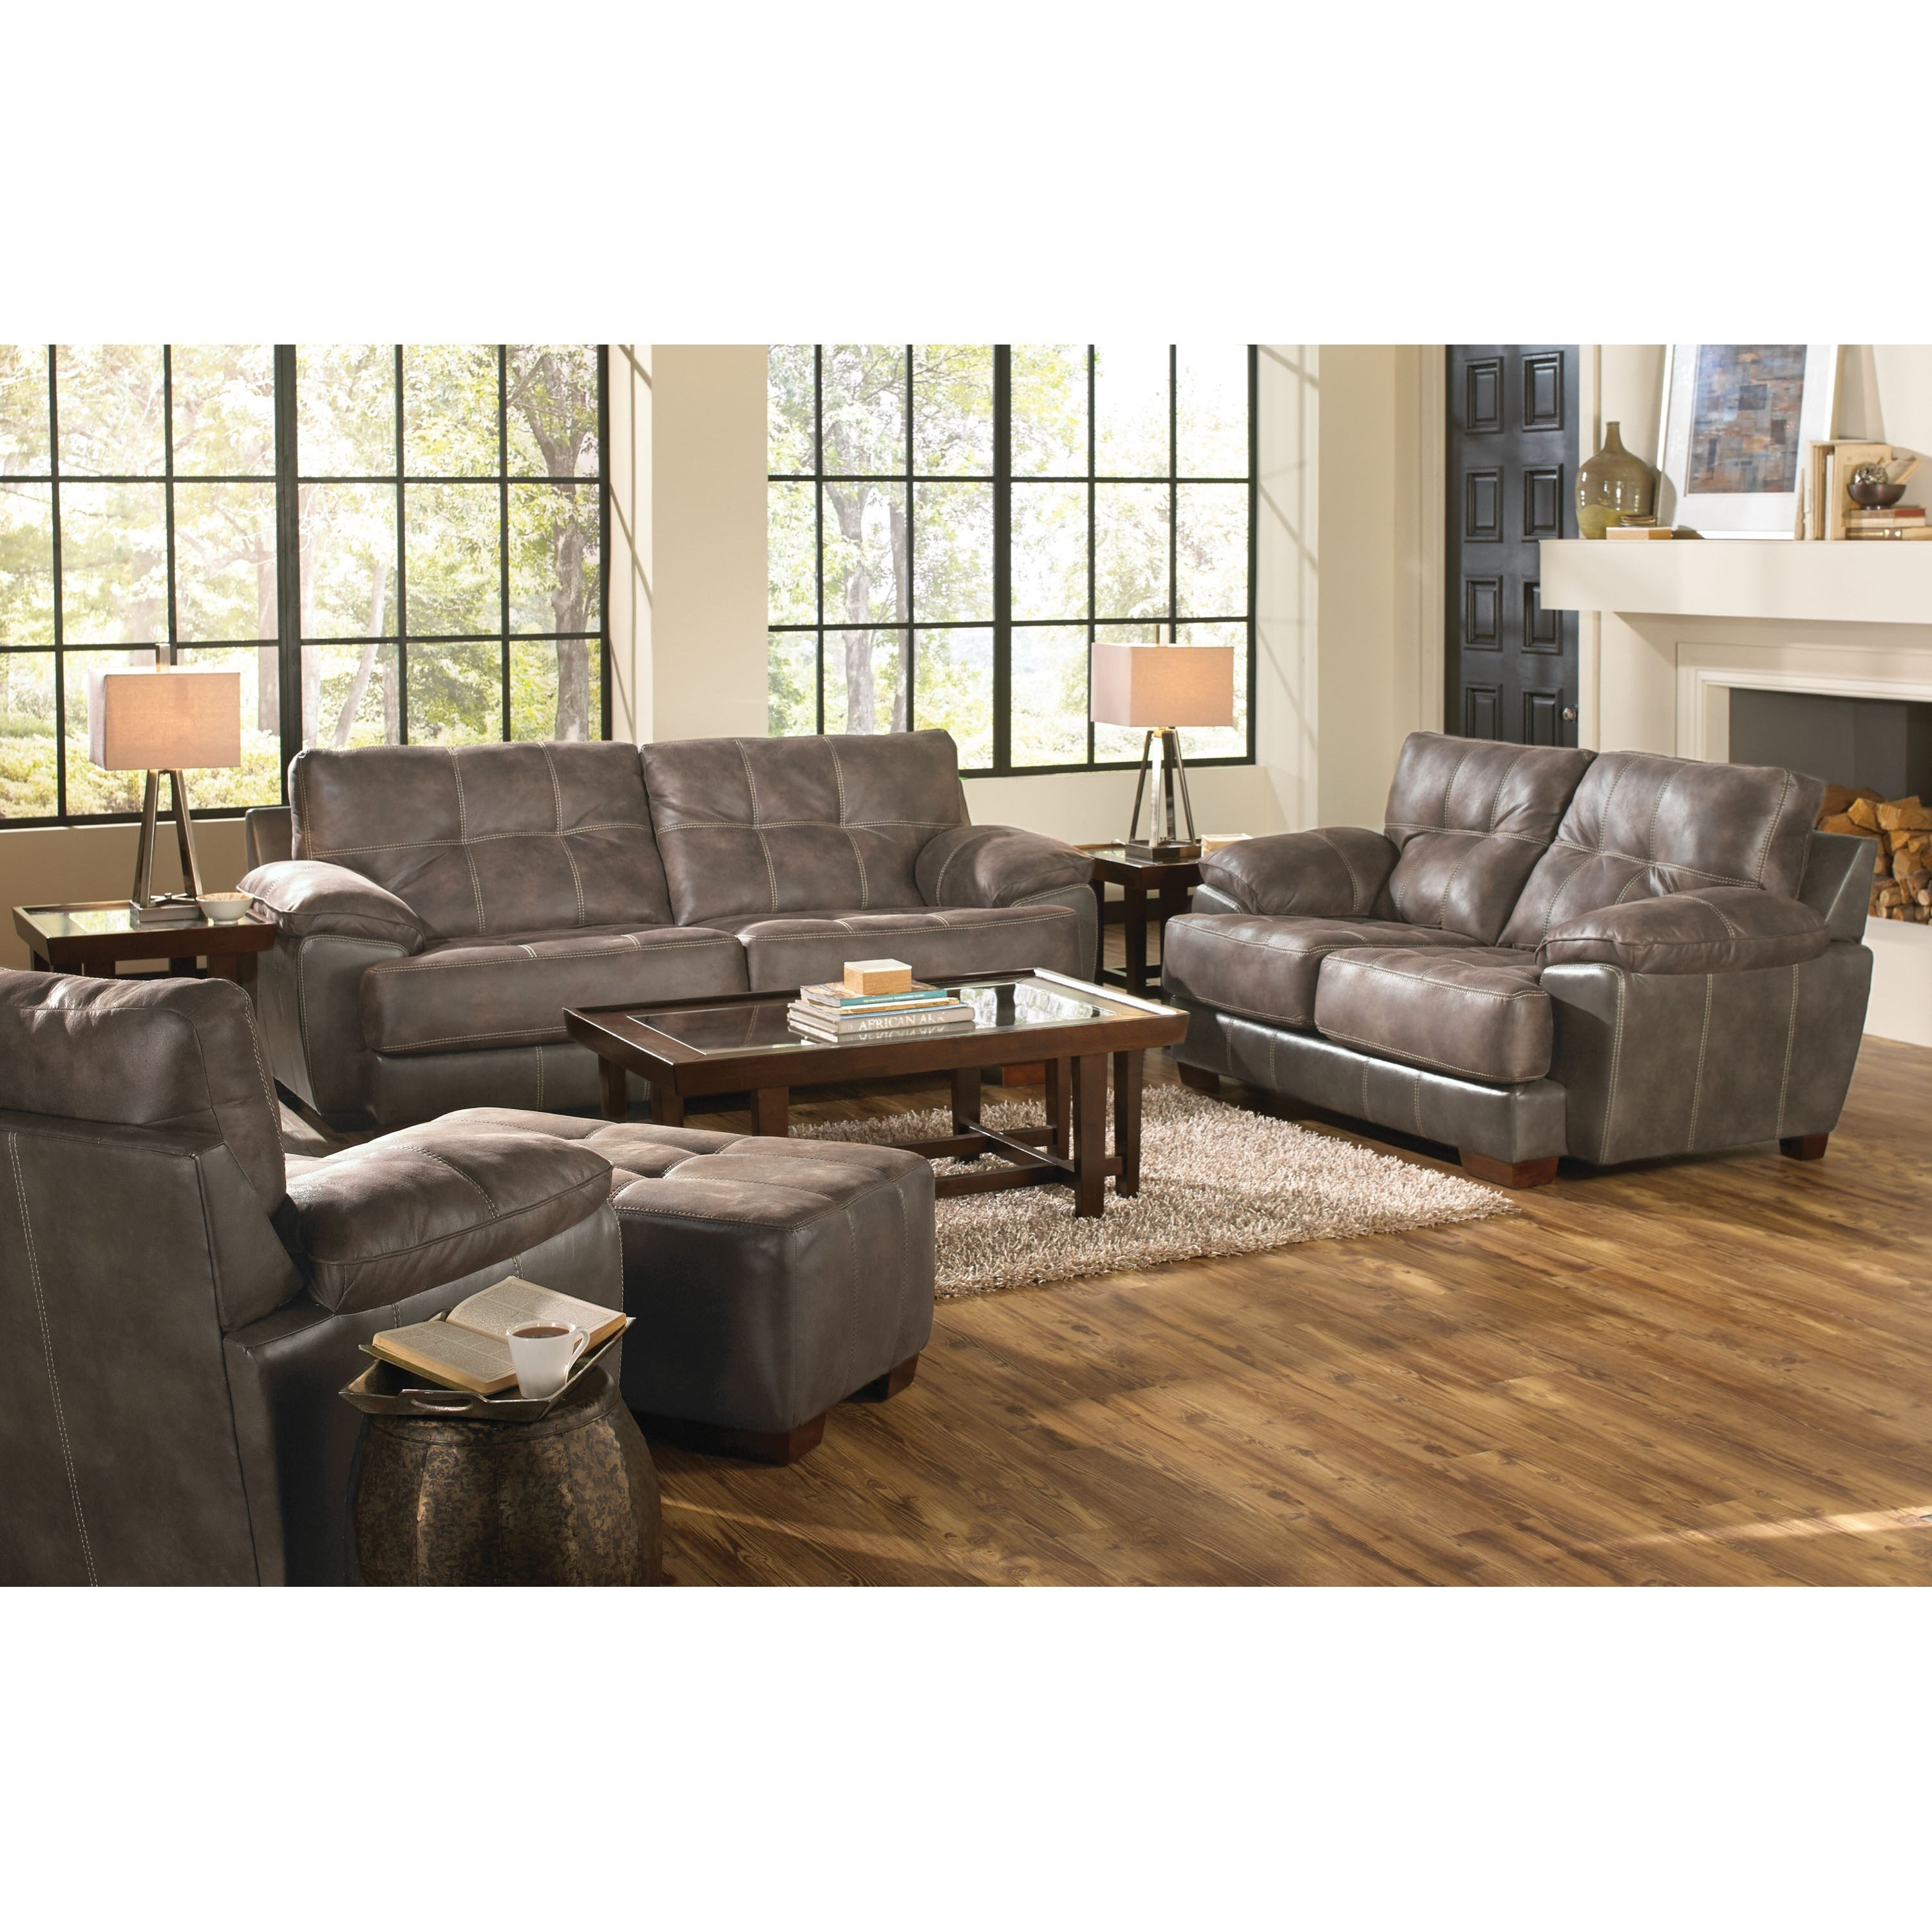 Drummond Living Room Group by Jackson Furniture at Northeast Factory Direct